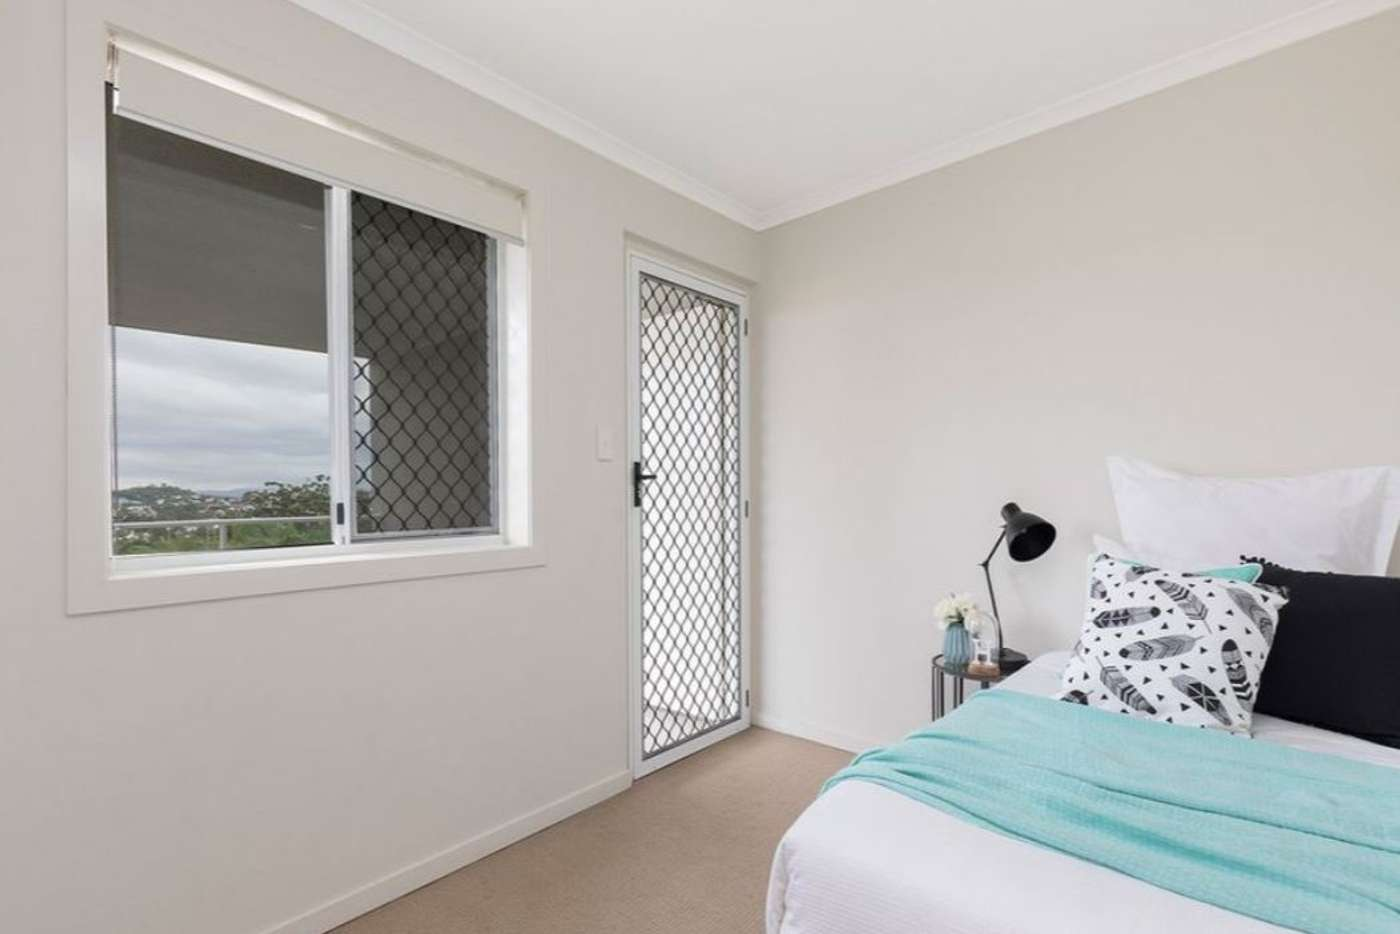 Sixth view of Homely unit listing, 2/42 Toorak Road, Hamilton QLD 4007